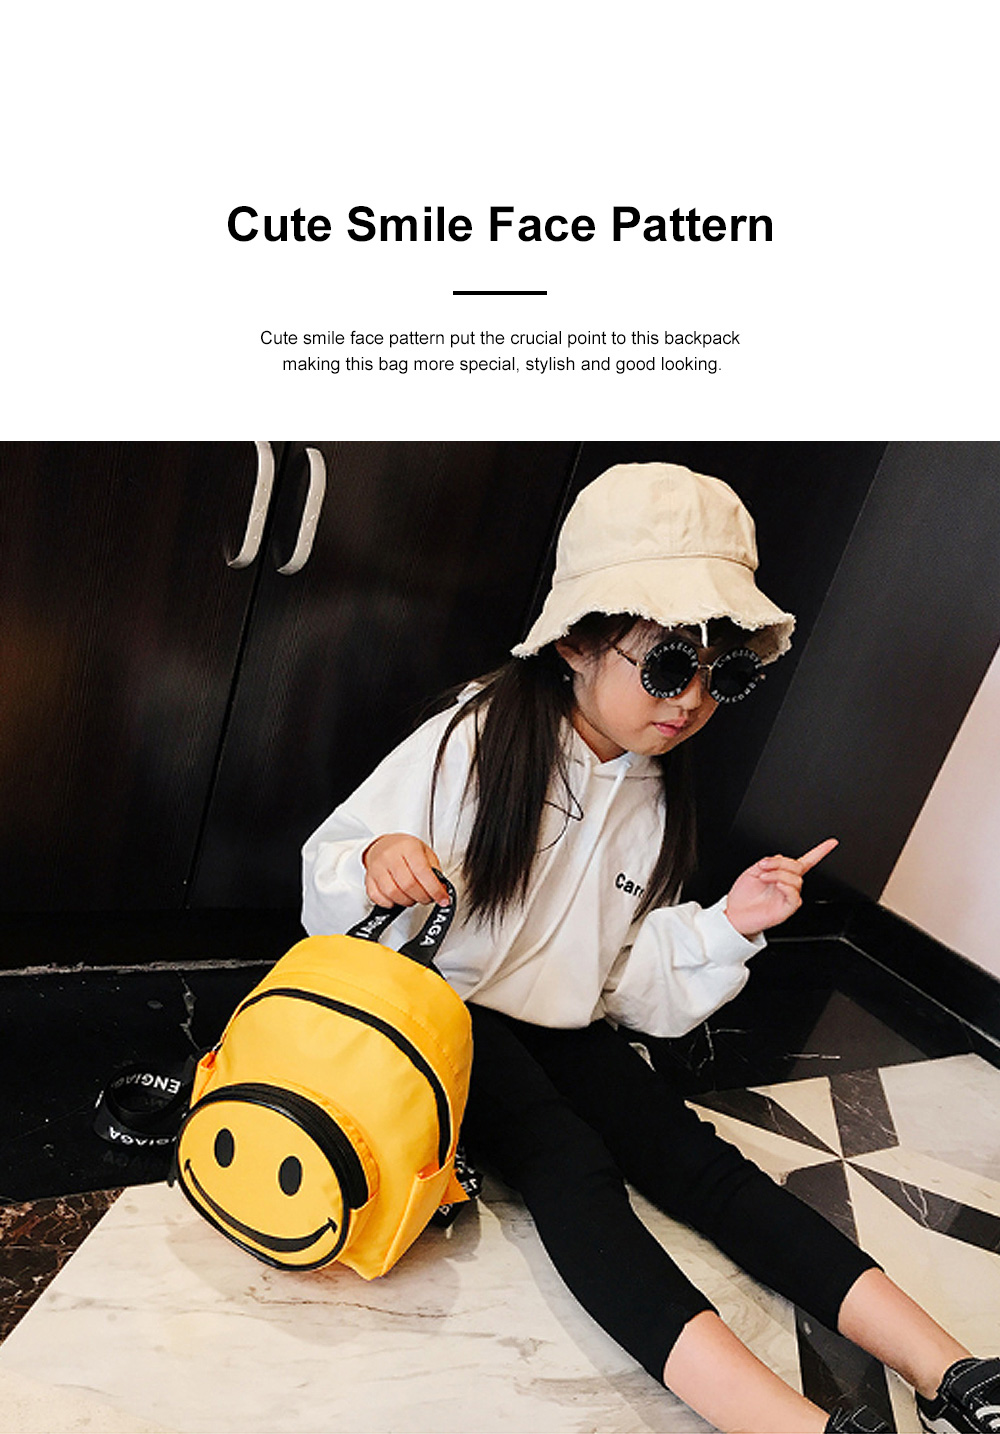 Cute Cartoon Smile Face Painting Children Backpack, Small Outdoors Traveling Shoulders Bag for Boys Girls 3